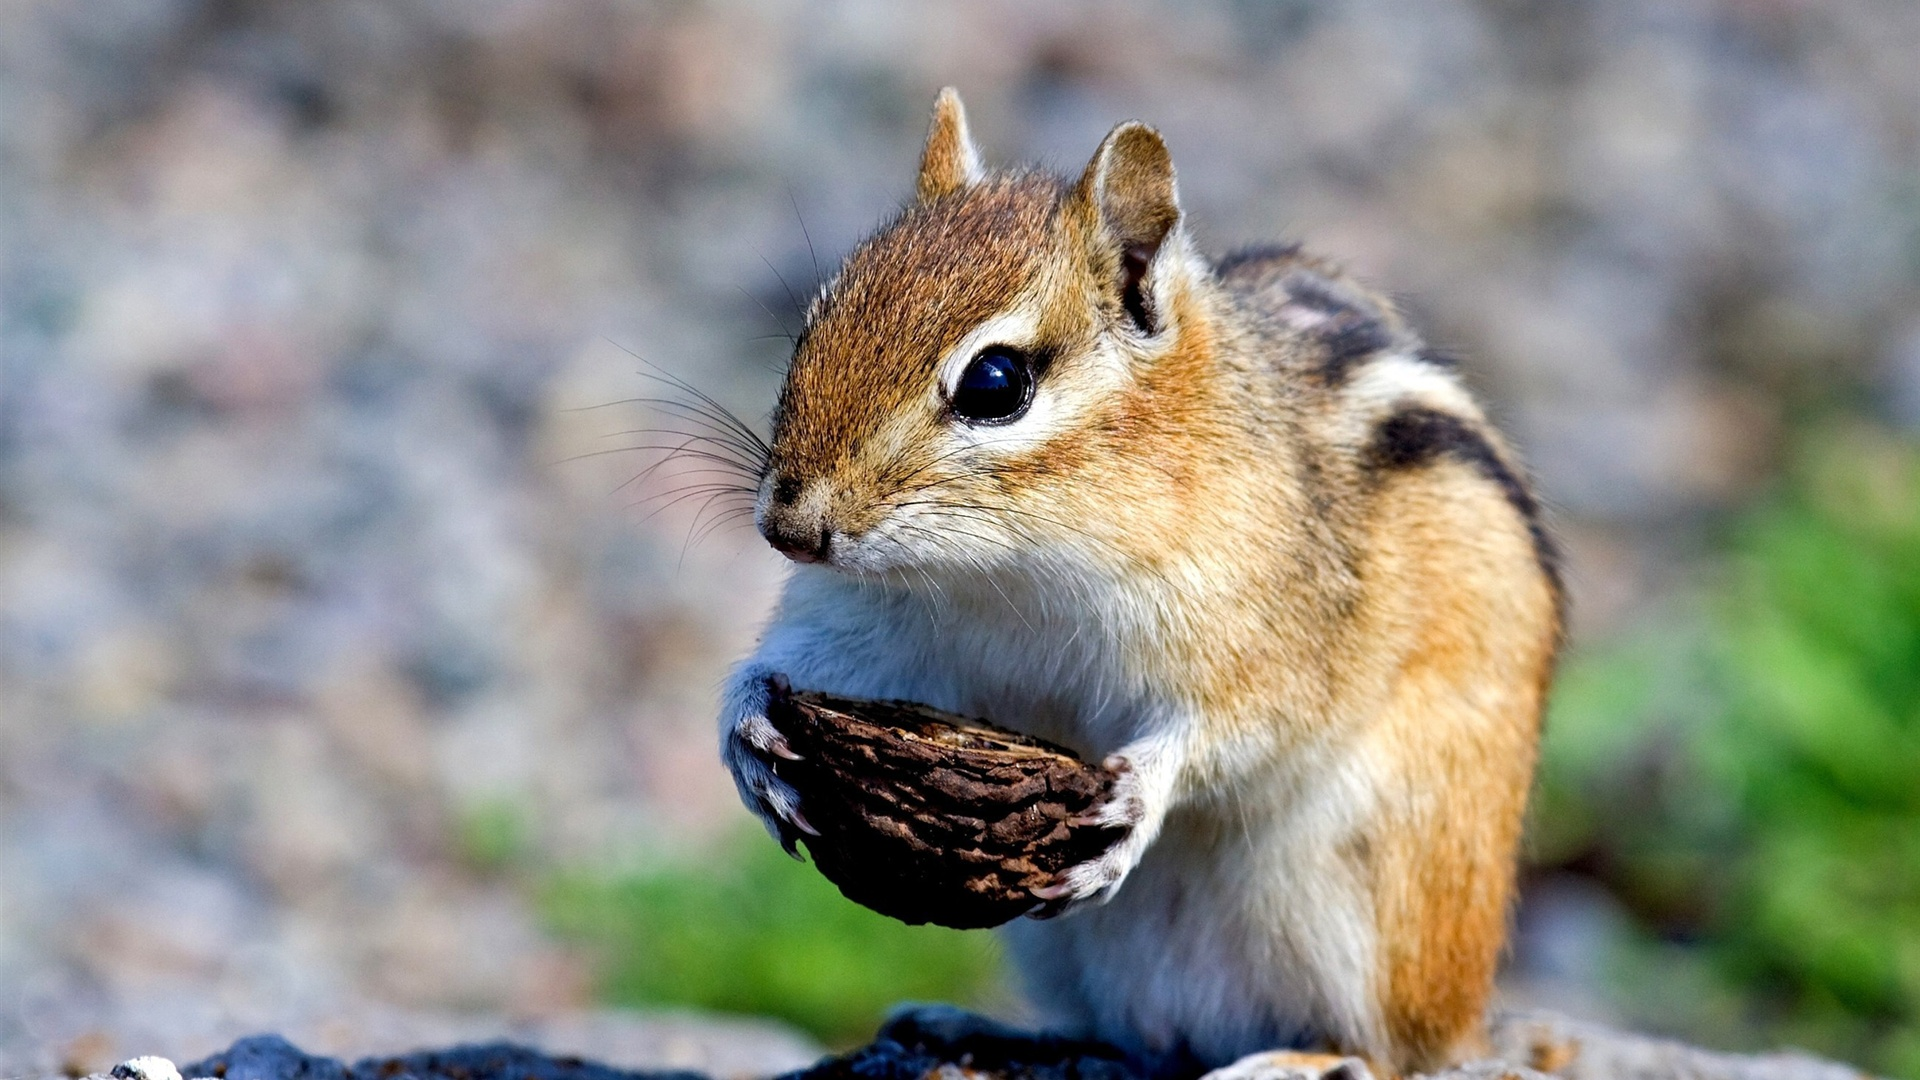 Download Wallpaper 1920x1080 Cute little squirrel Full HD ...